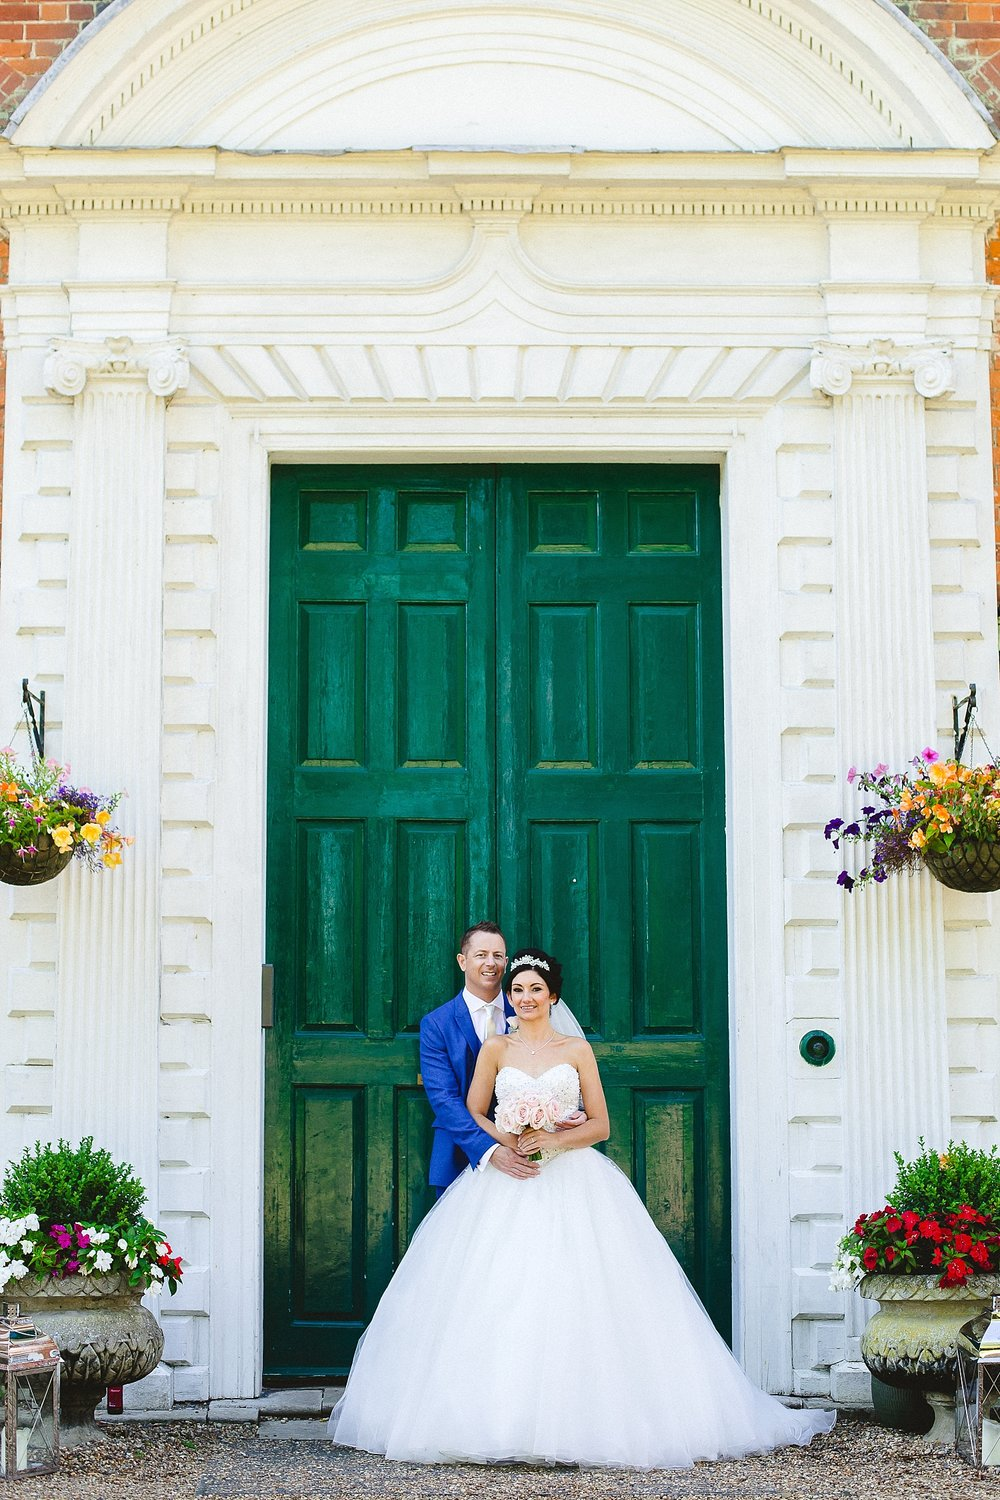 Gosfield_Hall_Essex_Wedding_Photographer_0072.jpg